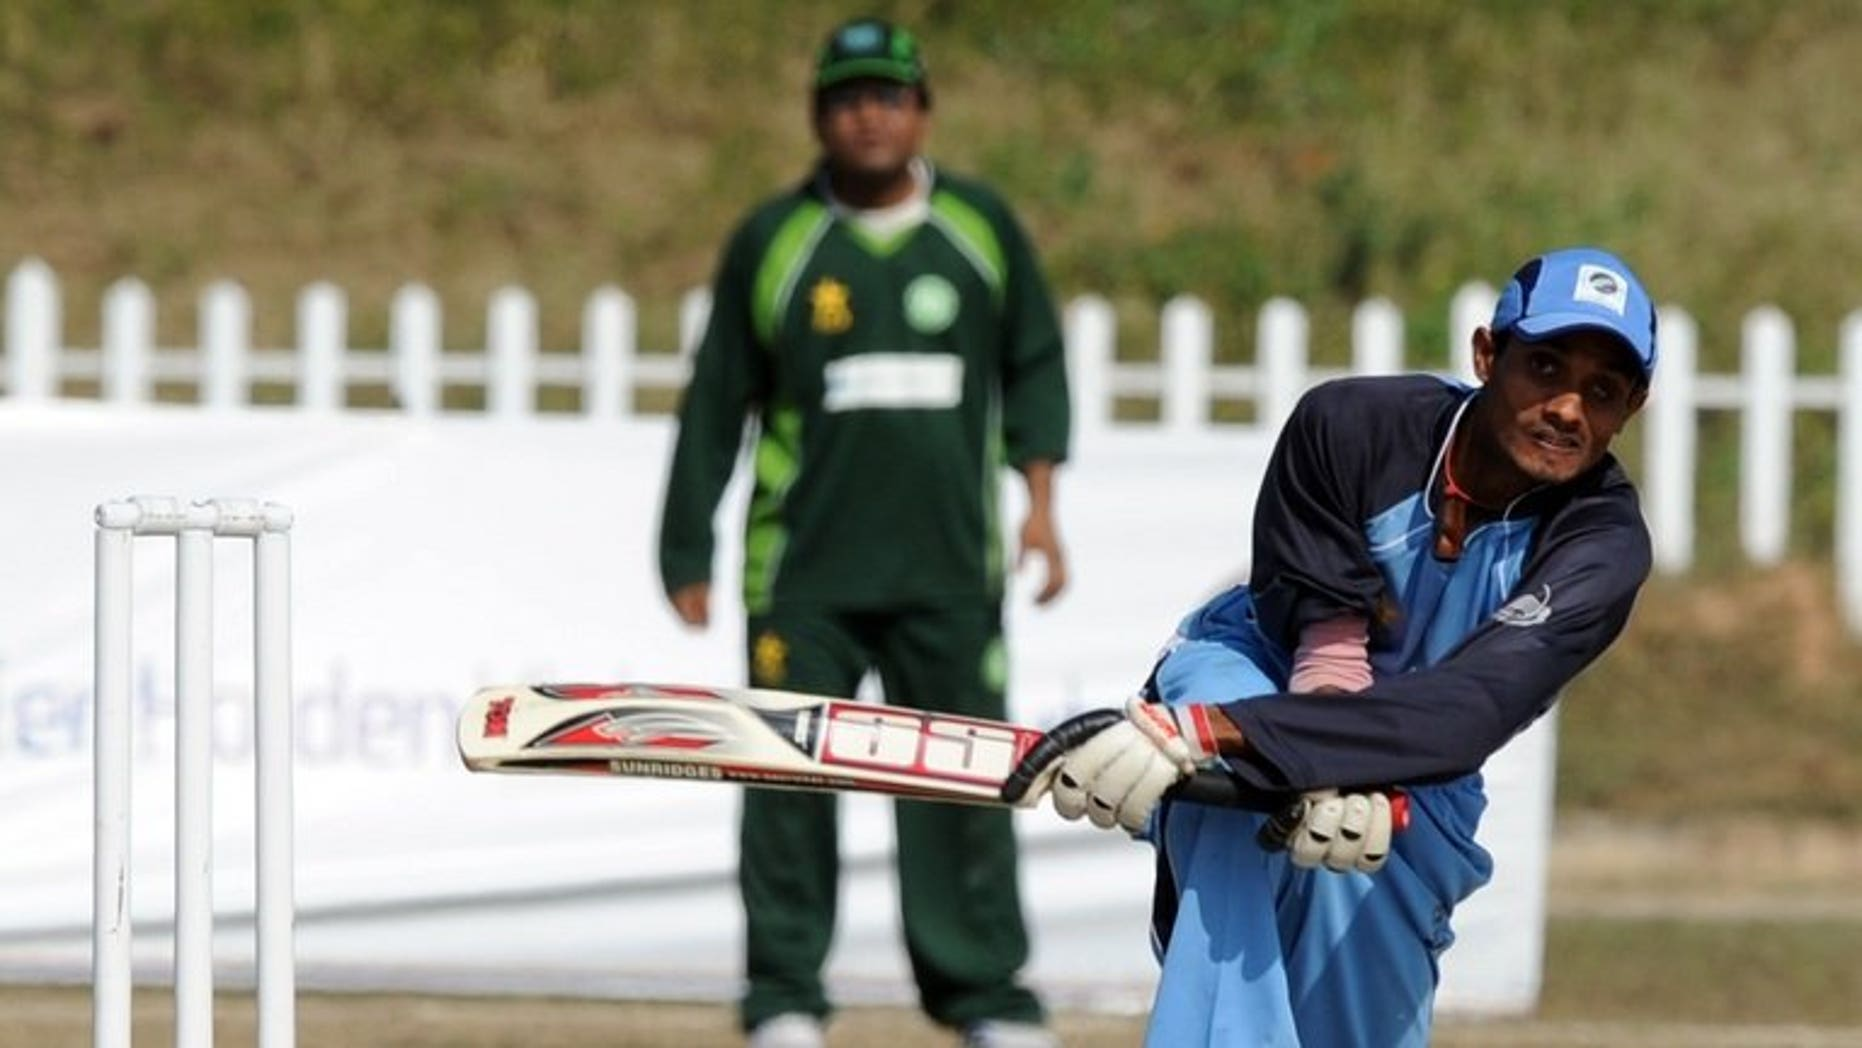 Visually impaired Indian cricketer Ganesh (R) plays a shot during their third and final blind cricket one-day international match between Pakistan and India in Islamabad on November 26, 2011. The body running cricket for the blind in Pakistan said Monday it has persuaded its counterparts in India to come on tour in February next year.